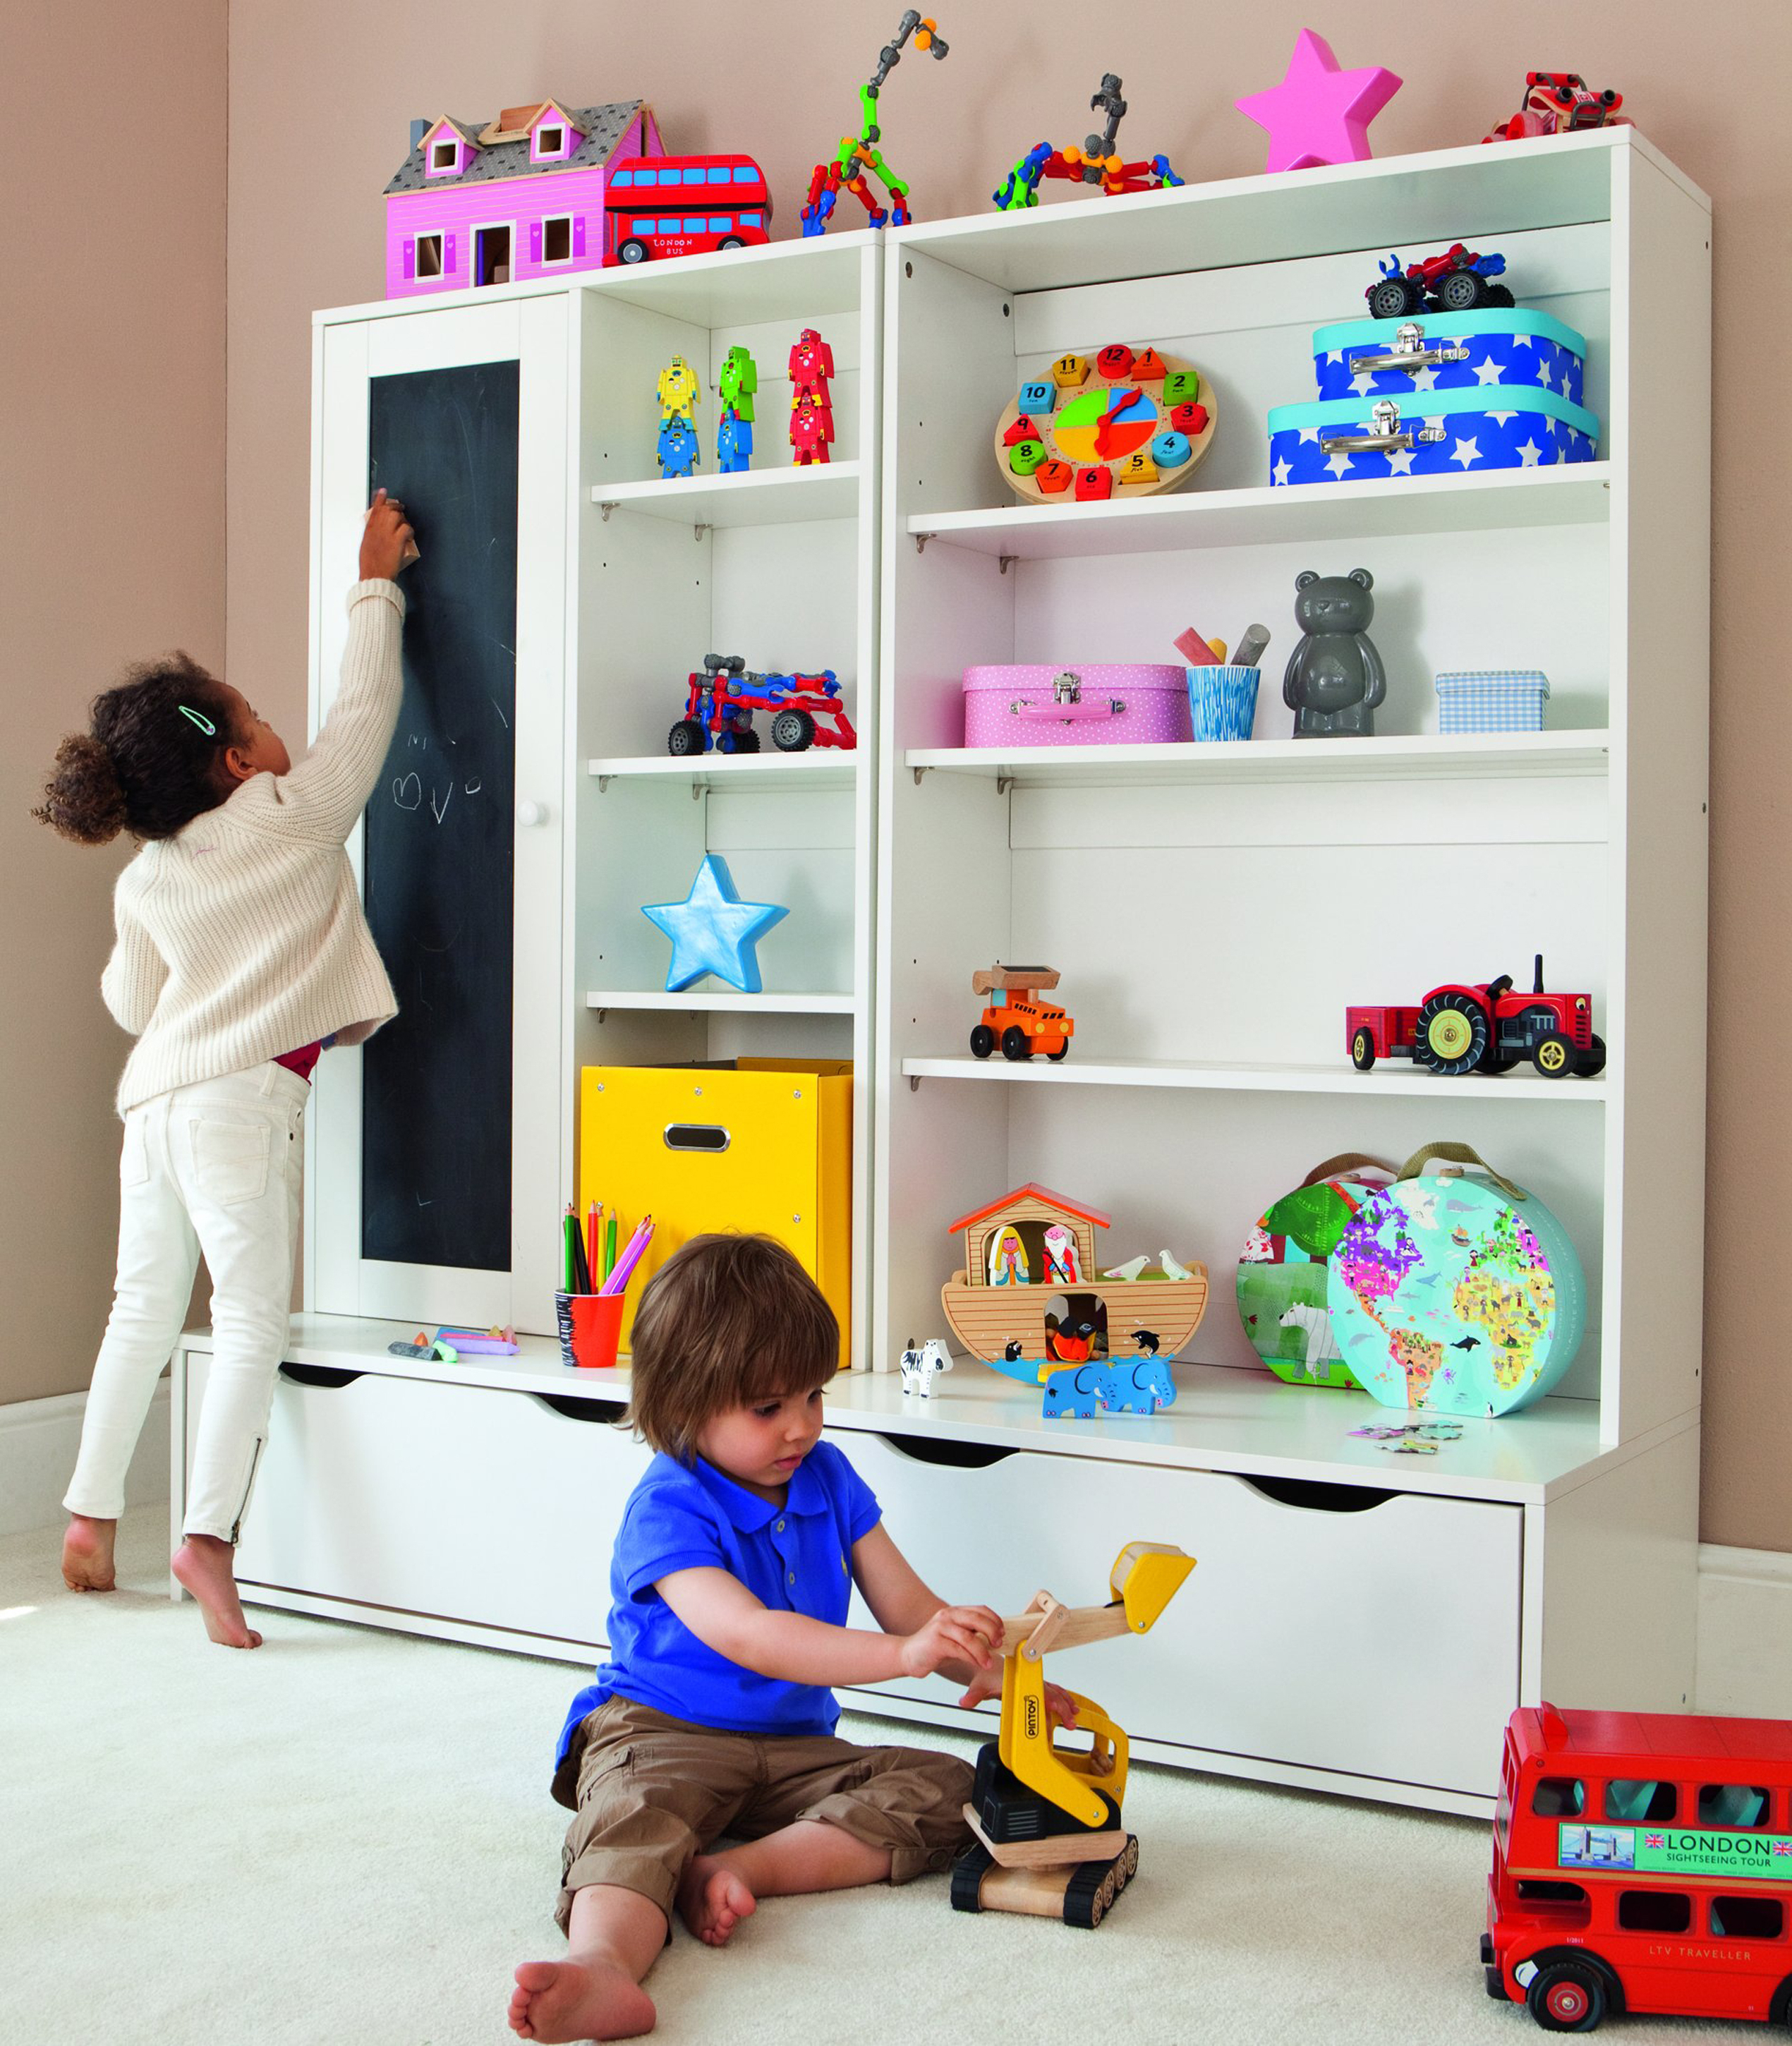 Luxury Kids Playroom Design Idea With White Open Shelves With Toys Light Brown Wall And Red Toy Car Interesting Kids Playroom Design Ideas (Image 85 of 123)